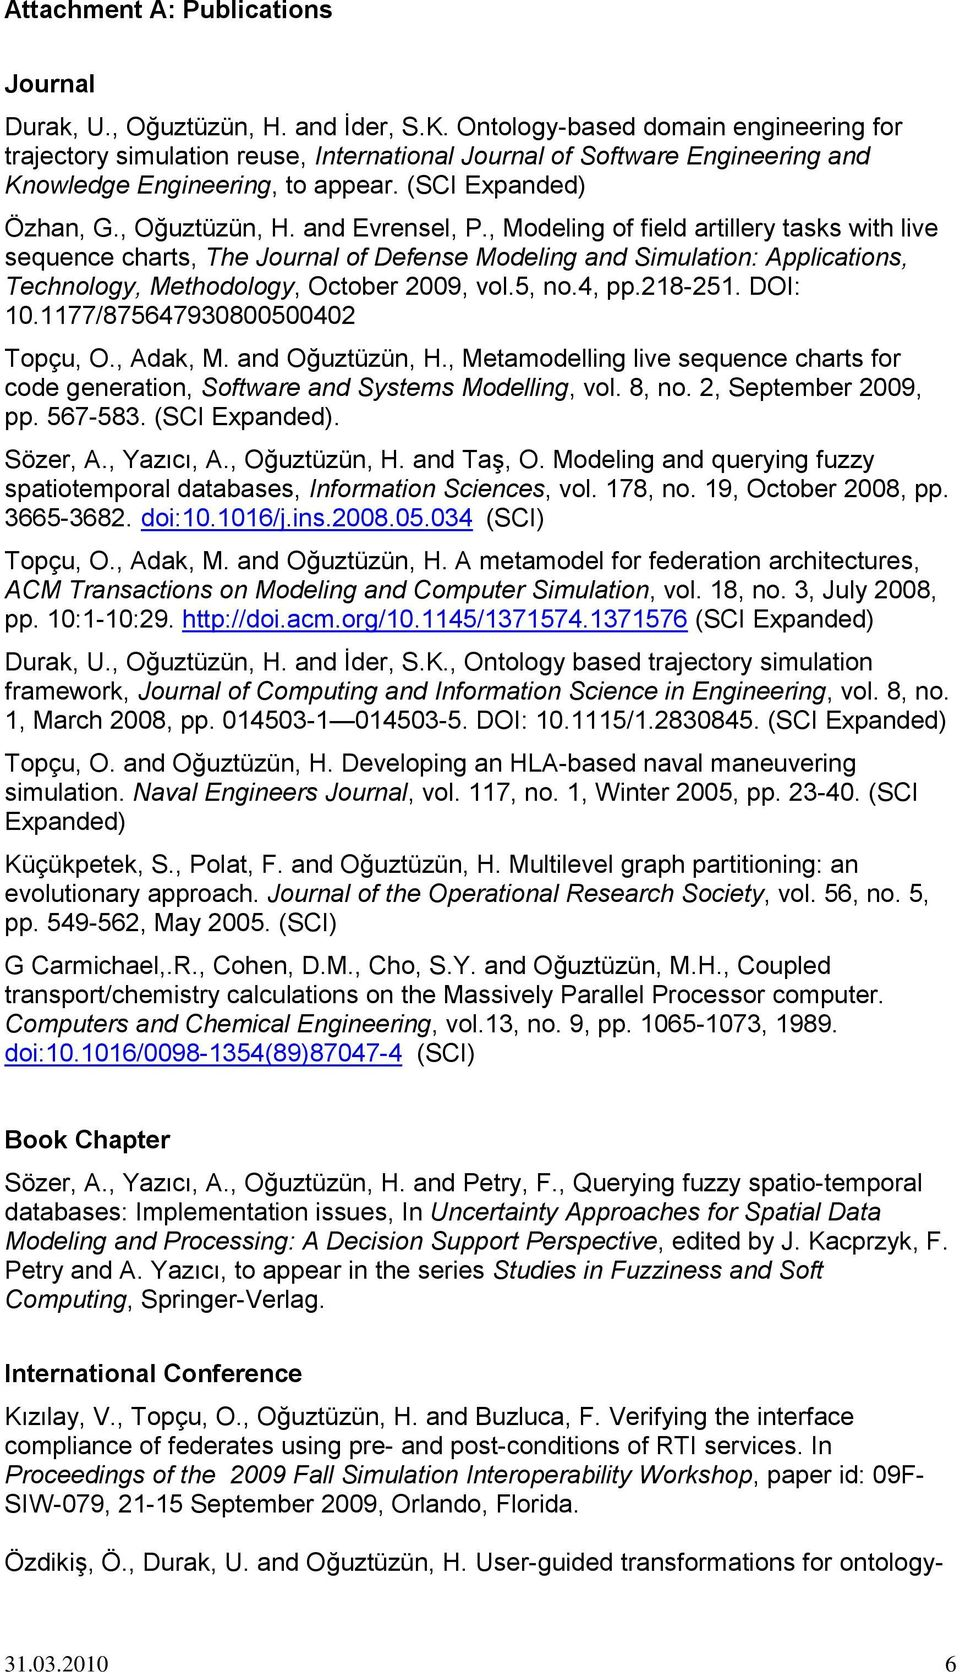 and Evrensel, P., Modeling of field artillery tasks with live sequence charts, The Journal of Defense Modeling and Simulation: Applications, Technology, Methodology, October 2009, vol.5, no.4, pp.